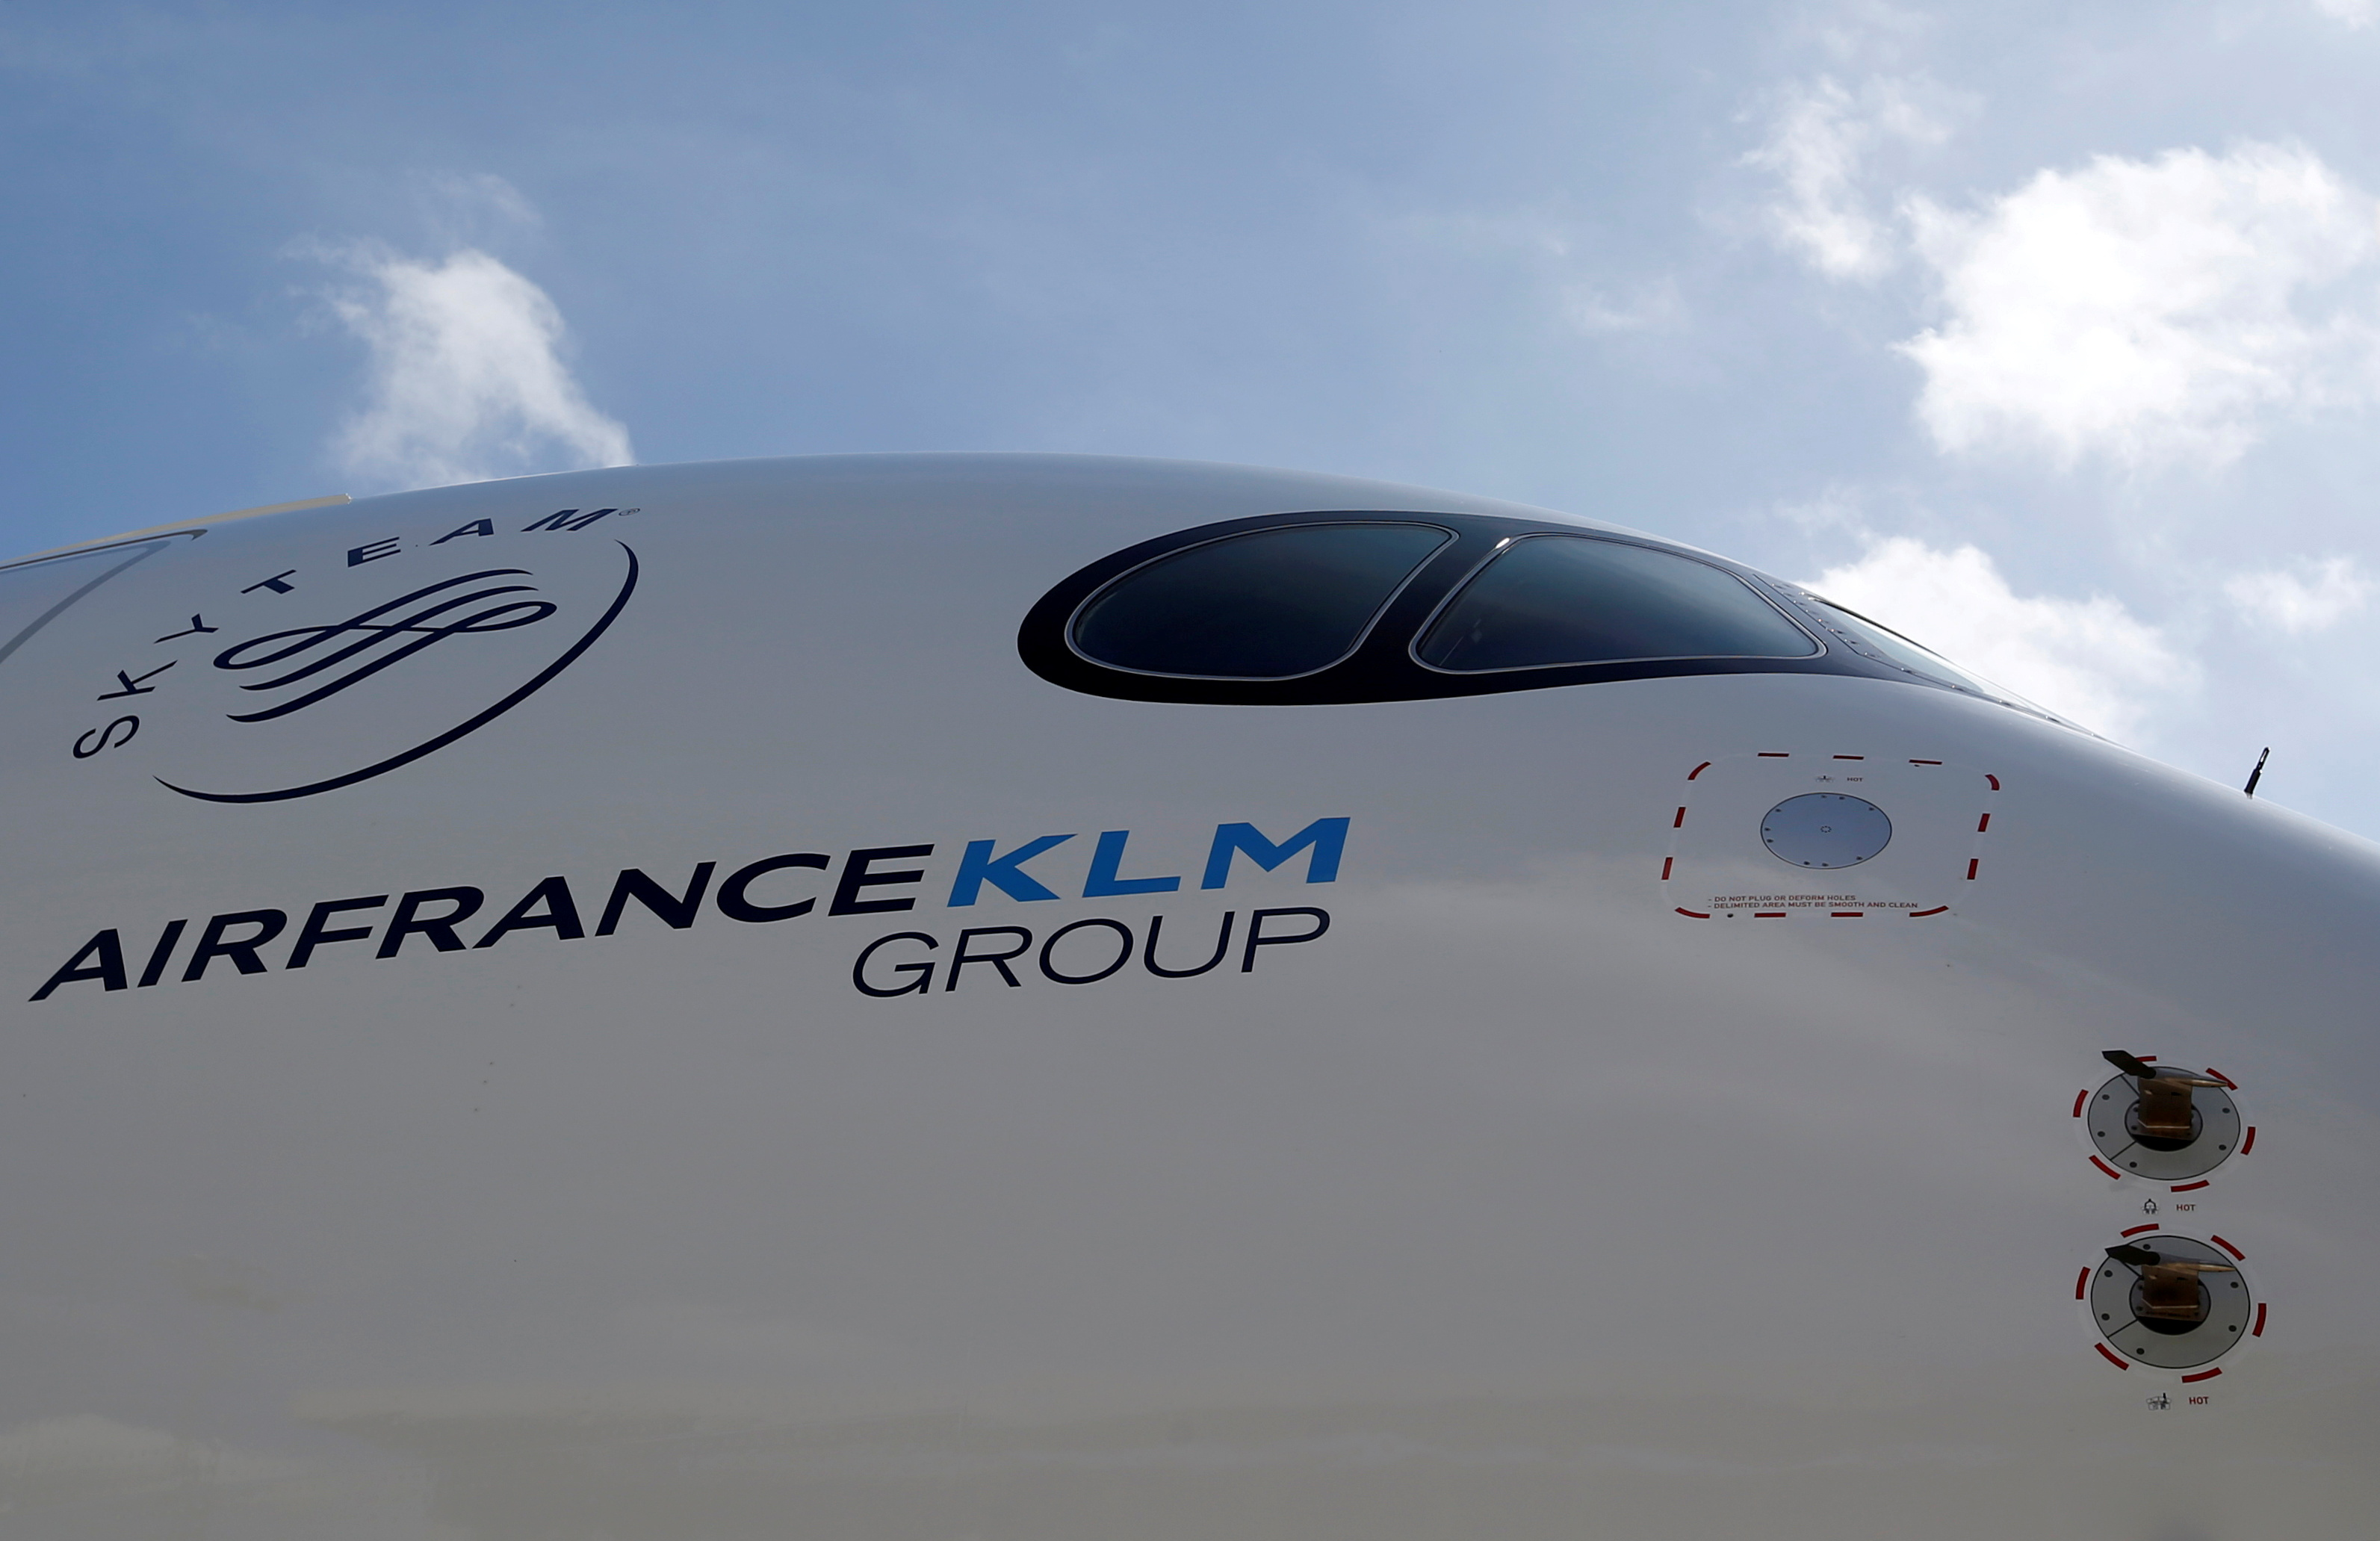 Logo of Air France KLM Group is pictured on the first Air France airliner's Airbus A350 during a ceremony at the aircraft builder's headquarters of Airbus in Colomiers near Toulouse, France, September 27, 2019. REUTERS/Regis Duvignau